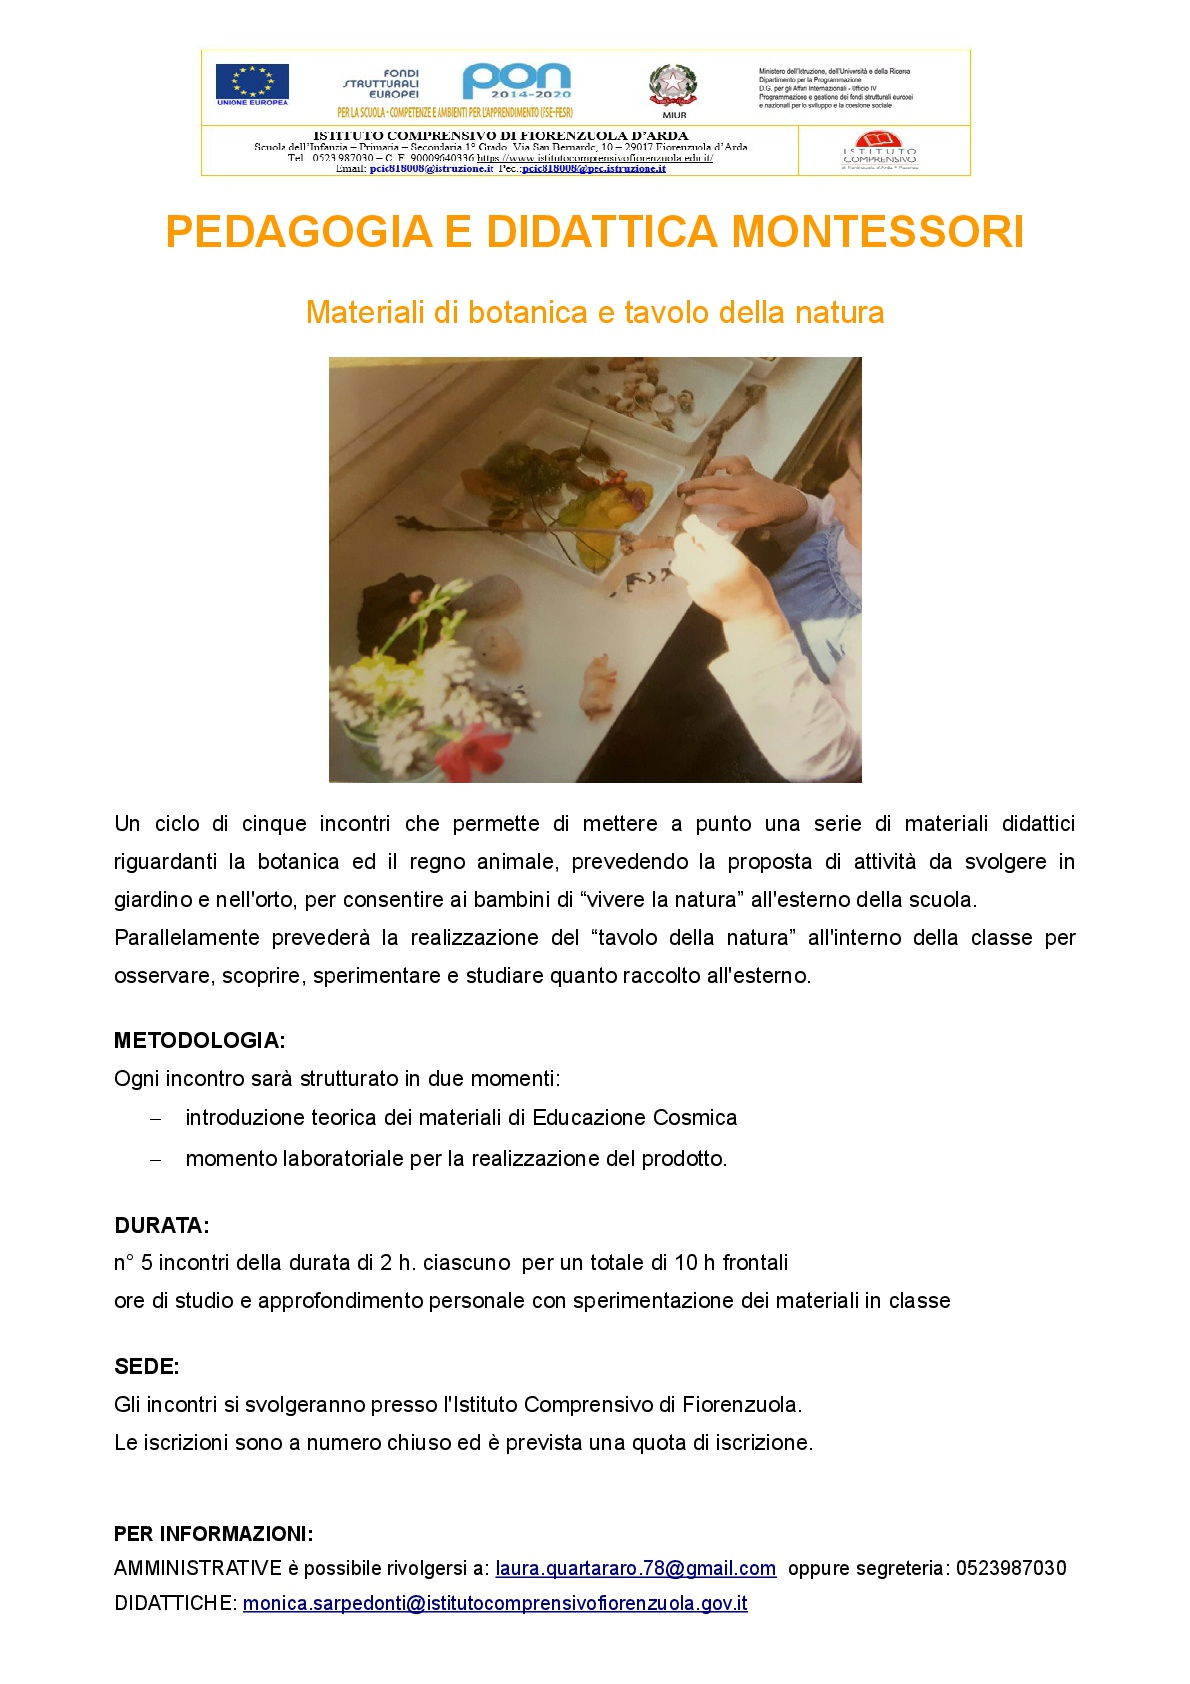 locandina workshop montessori 2018 2019-001